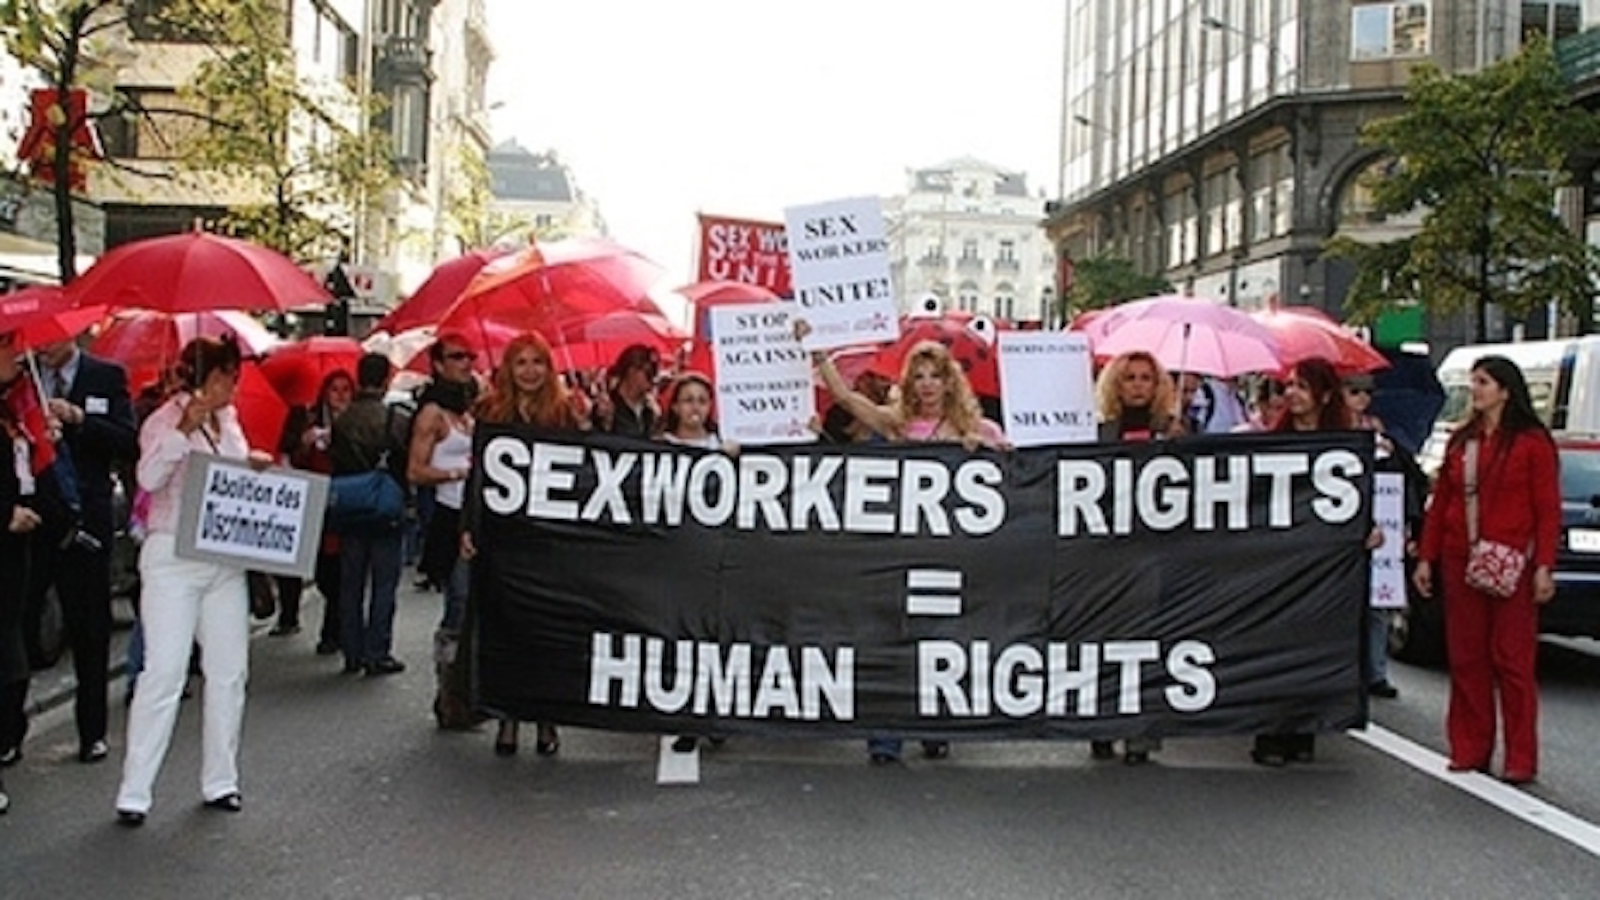 Amnesty_international_decriminalize_sex_work_galore_mag_1-df096c286cb8d99c2ba58db59557bb3b-